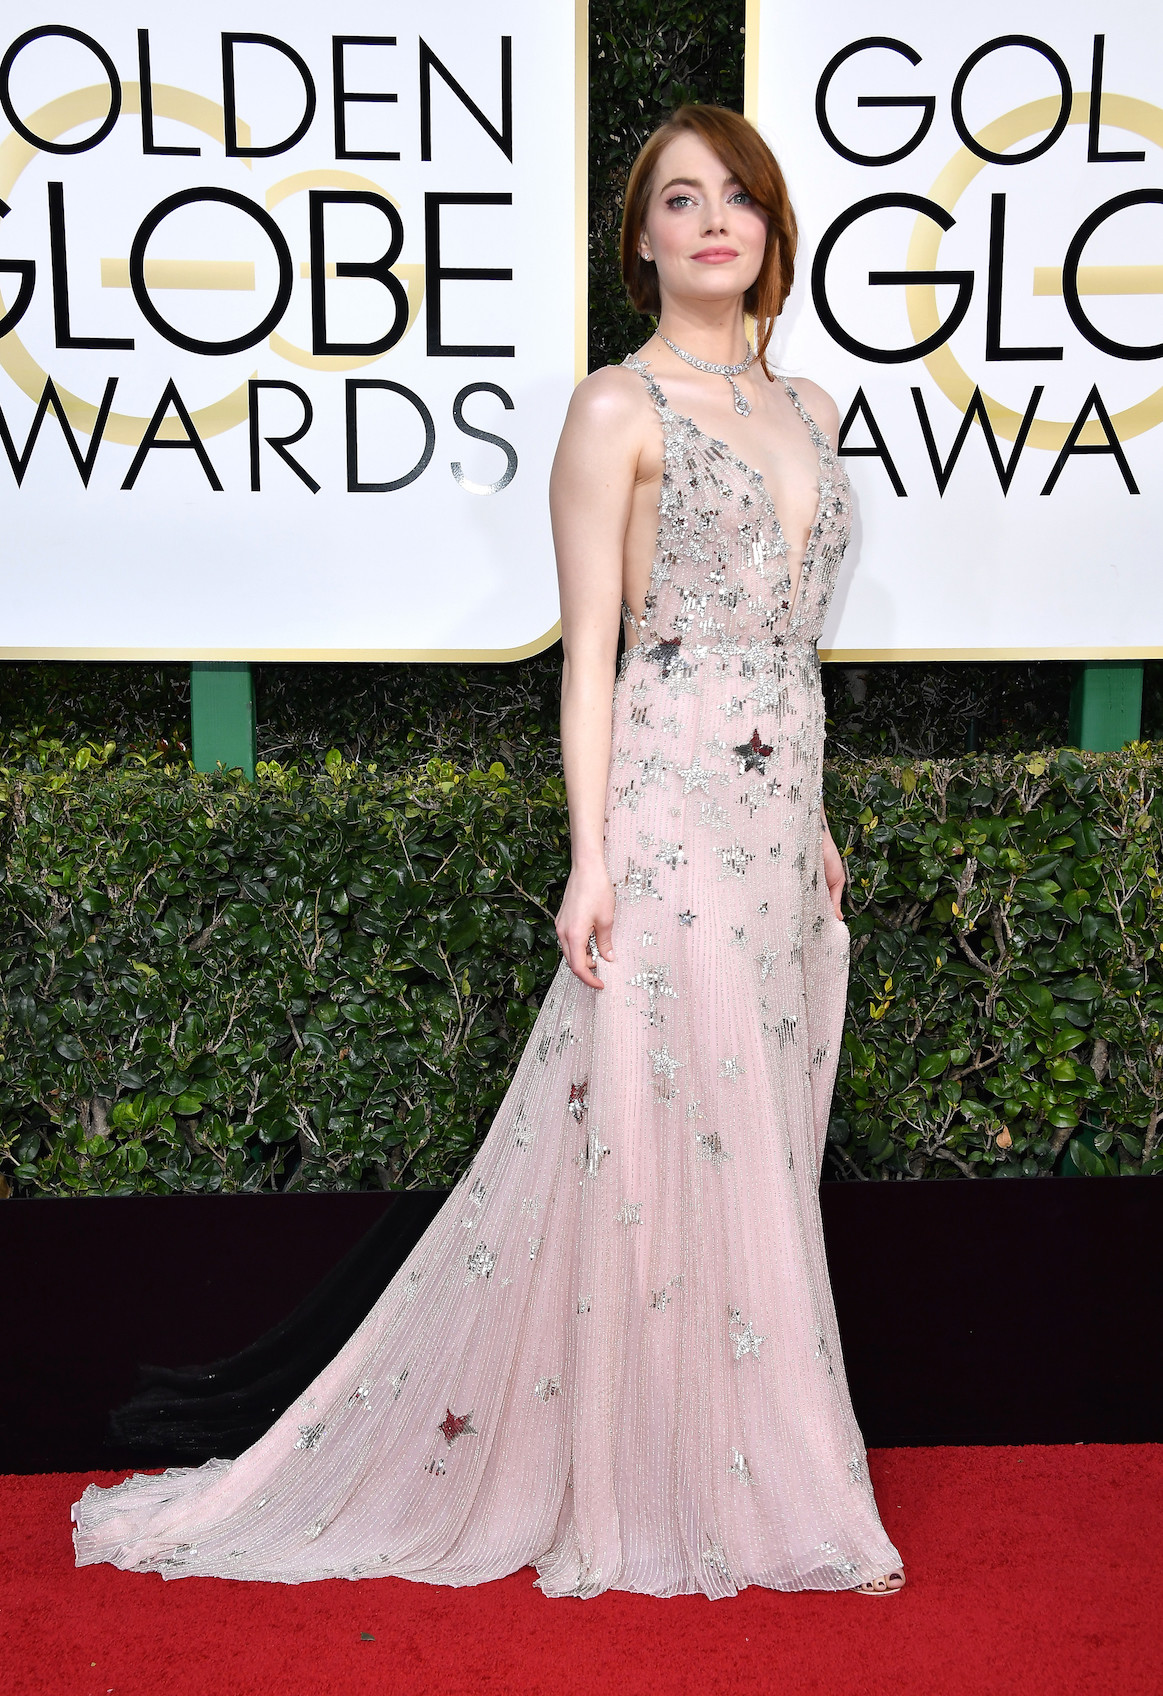 877e8969c Golden Globes 2017: The Best Red Carpet Dresses to Inspire Your Bridal Look